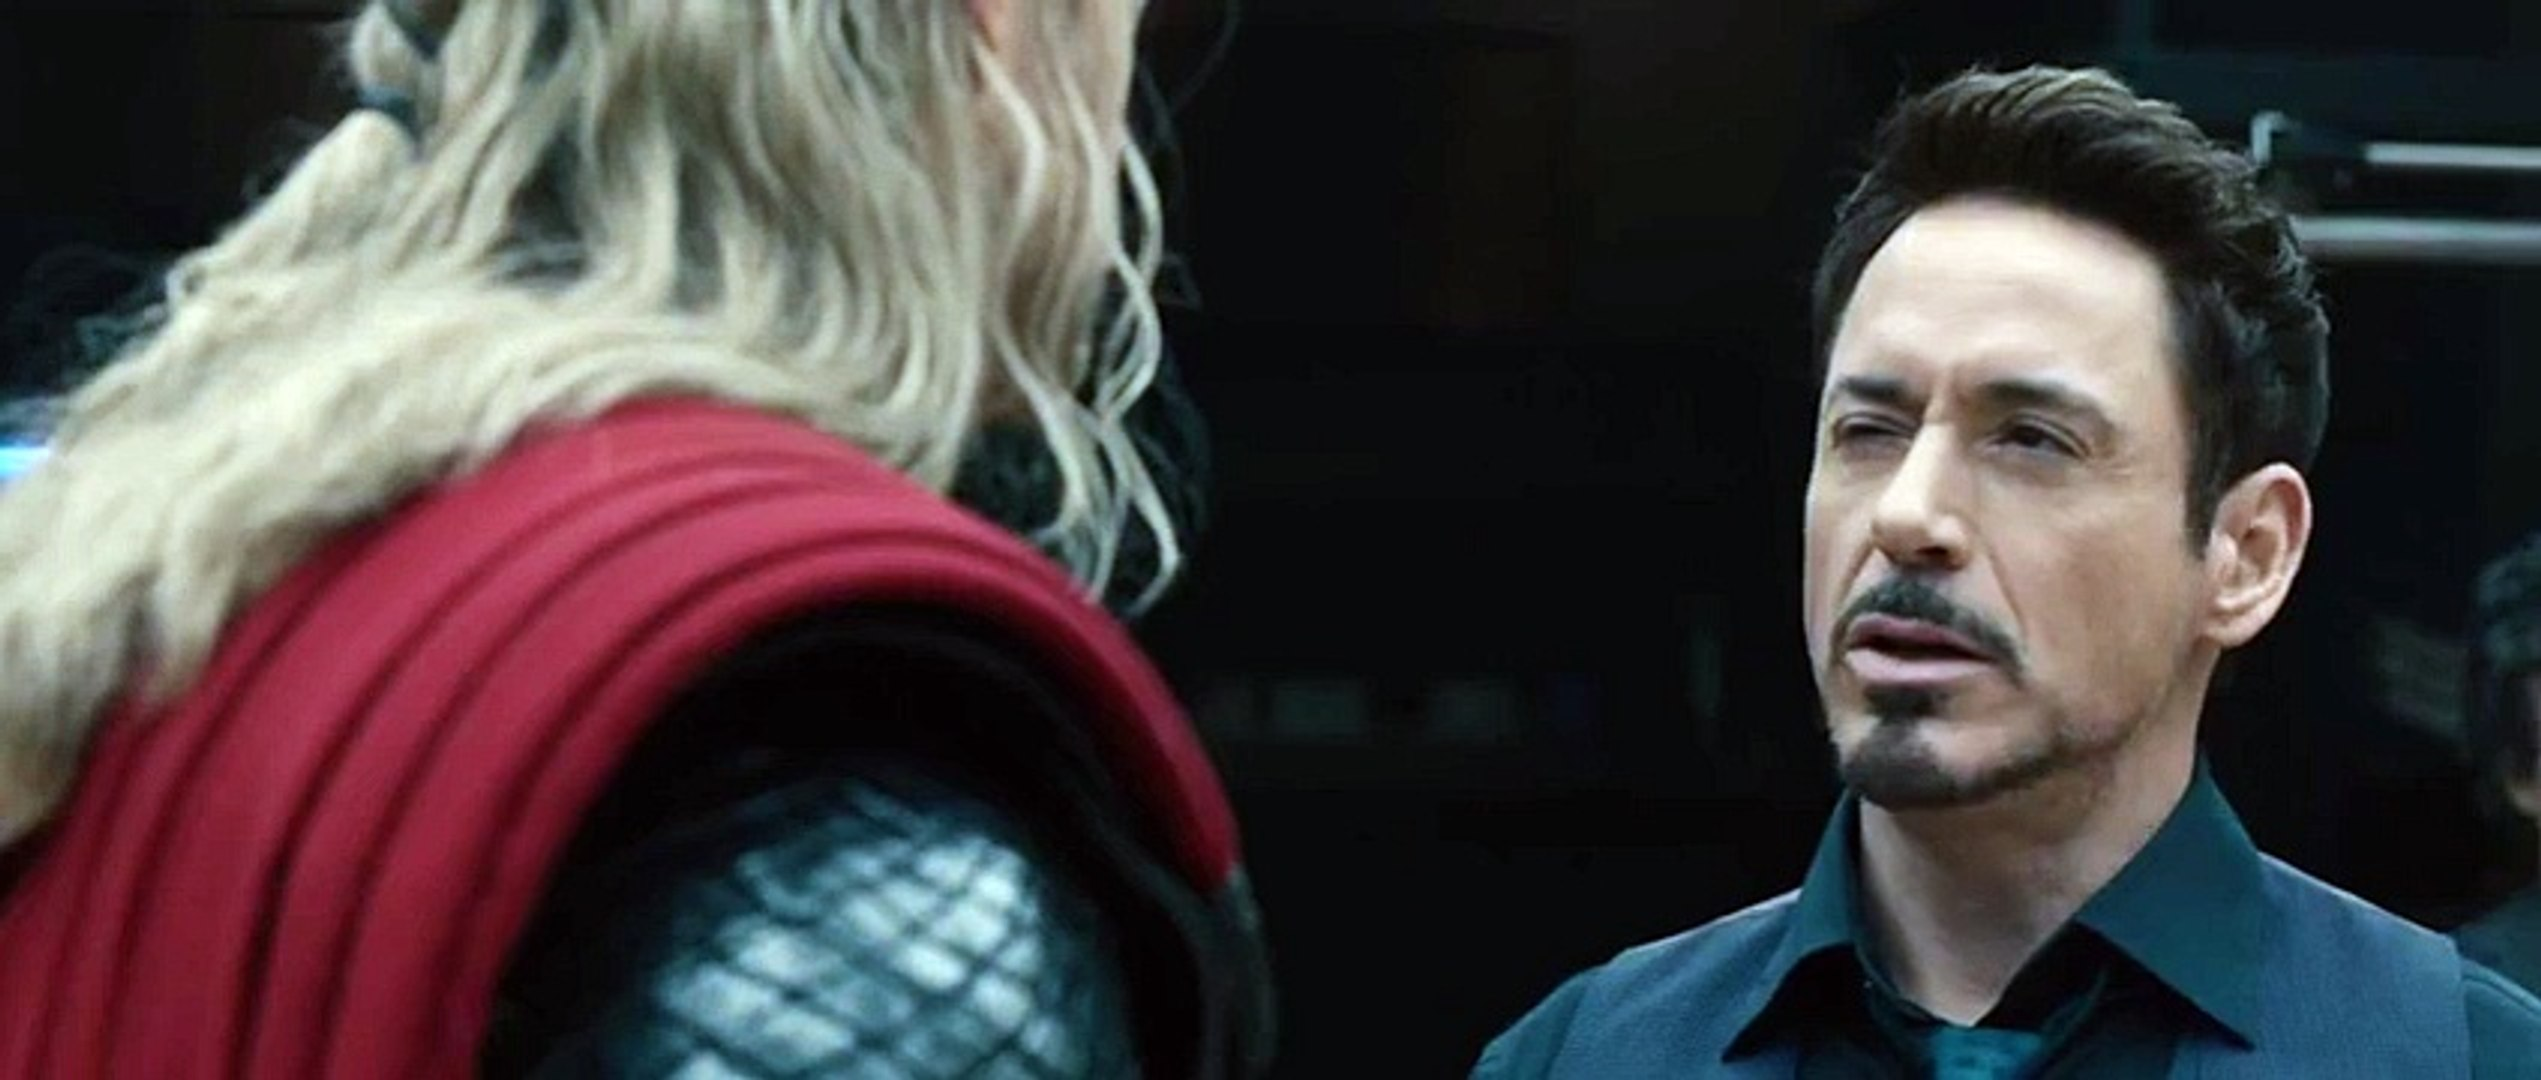 Avengers Age of Ultron Movie Clip | We're the Avengers (2015) | Avengers Sequel HD